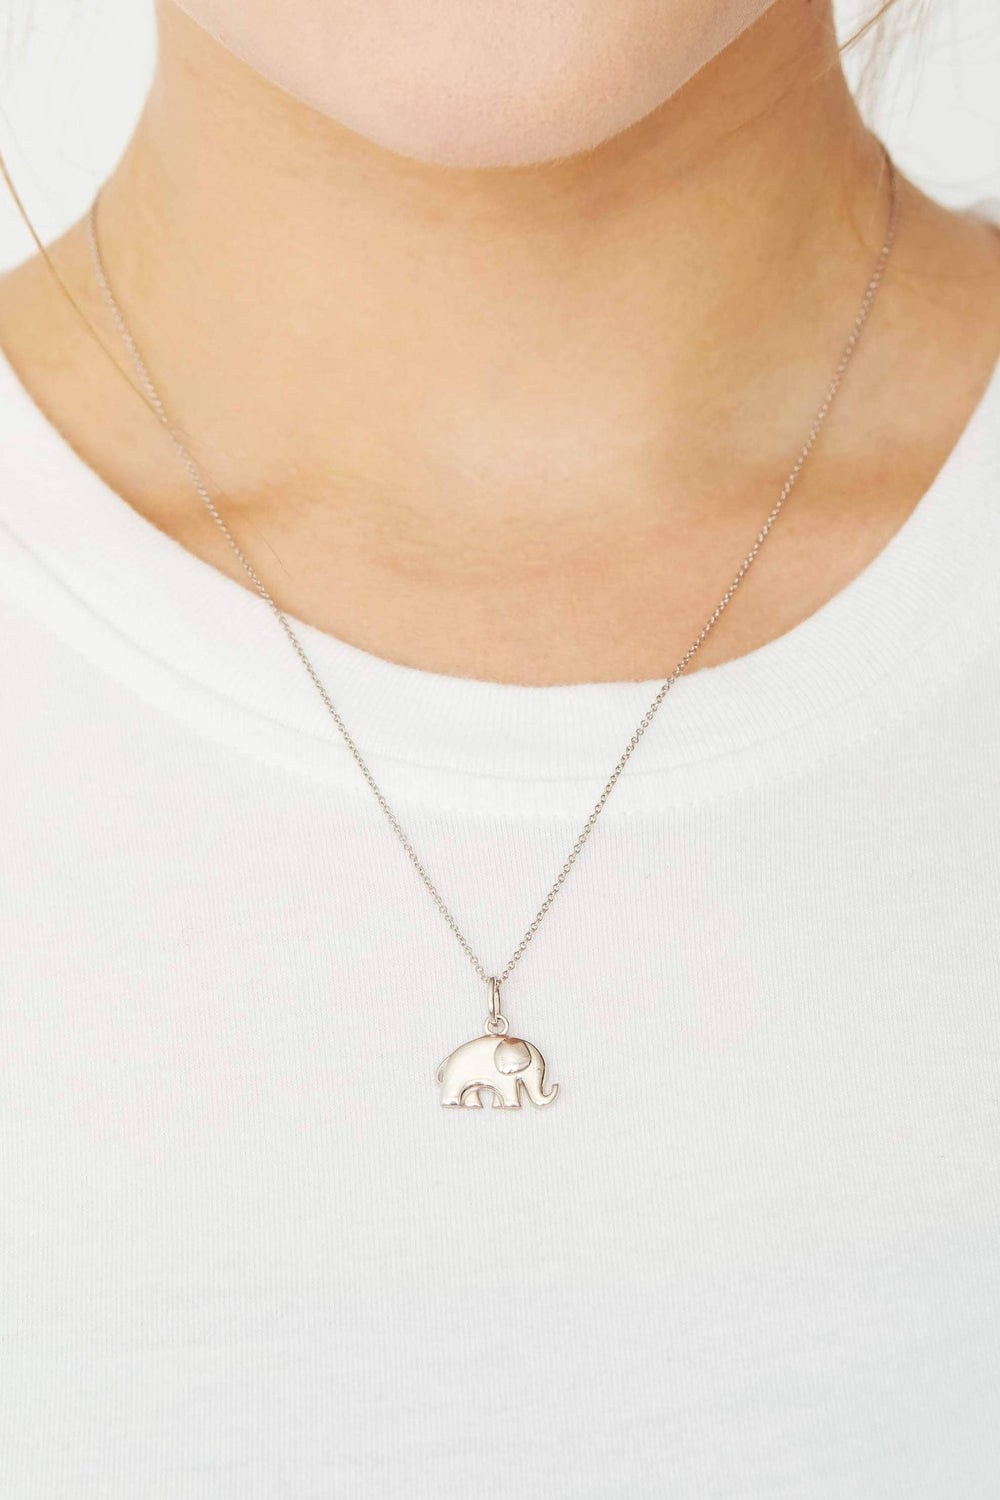 Ivory Ella Jewelry Silver Elephant Charm Necklace